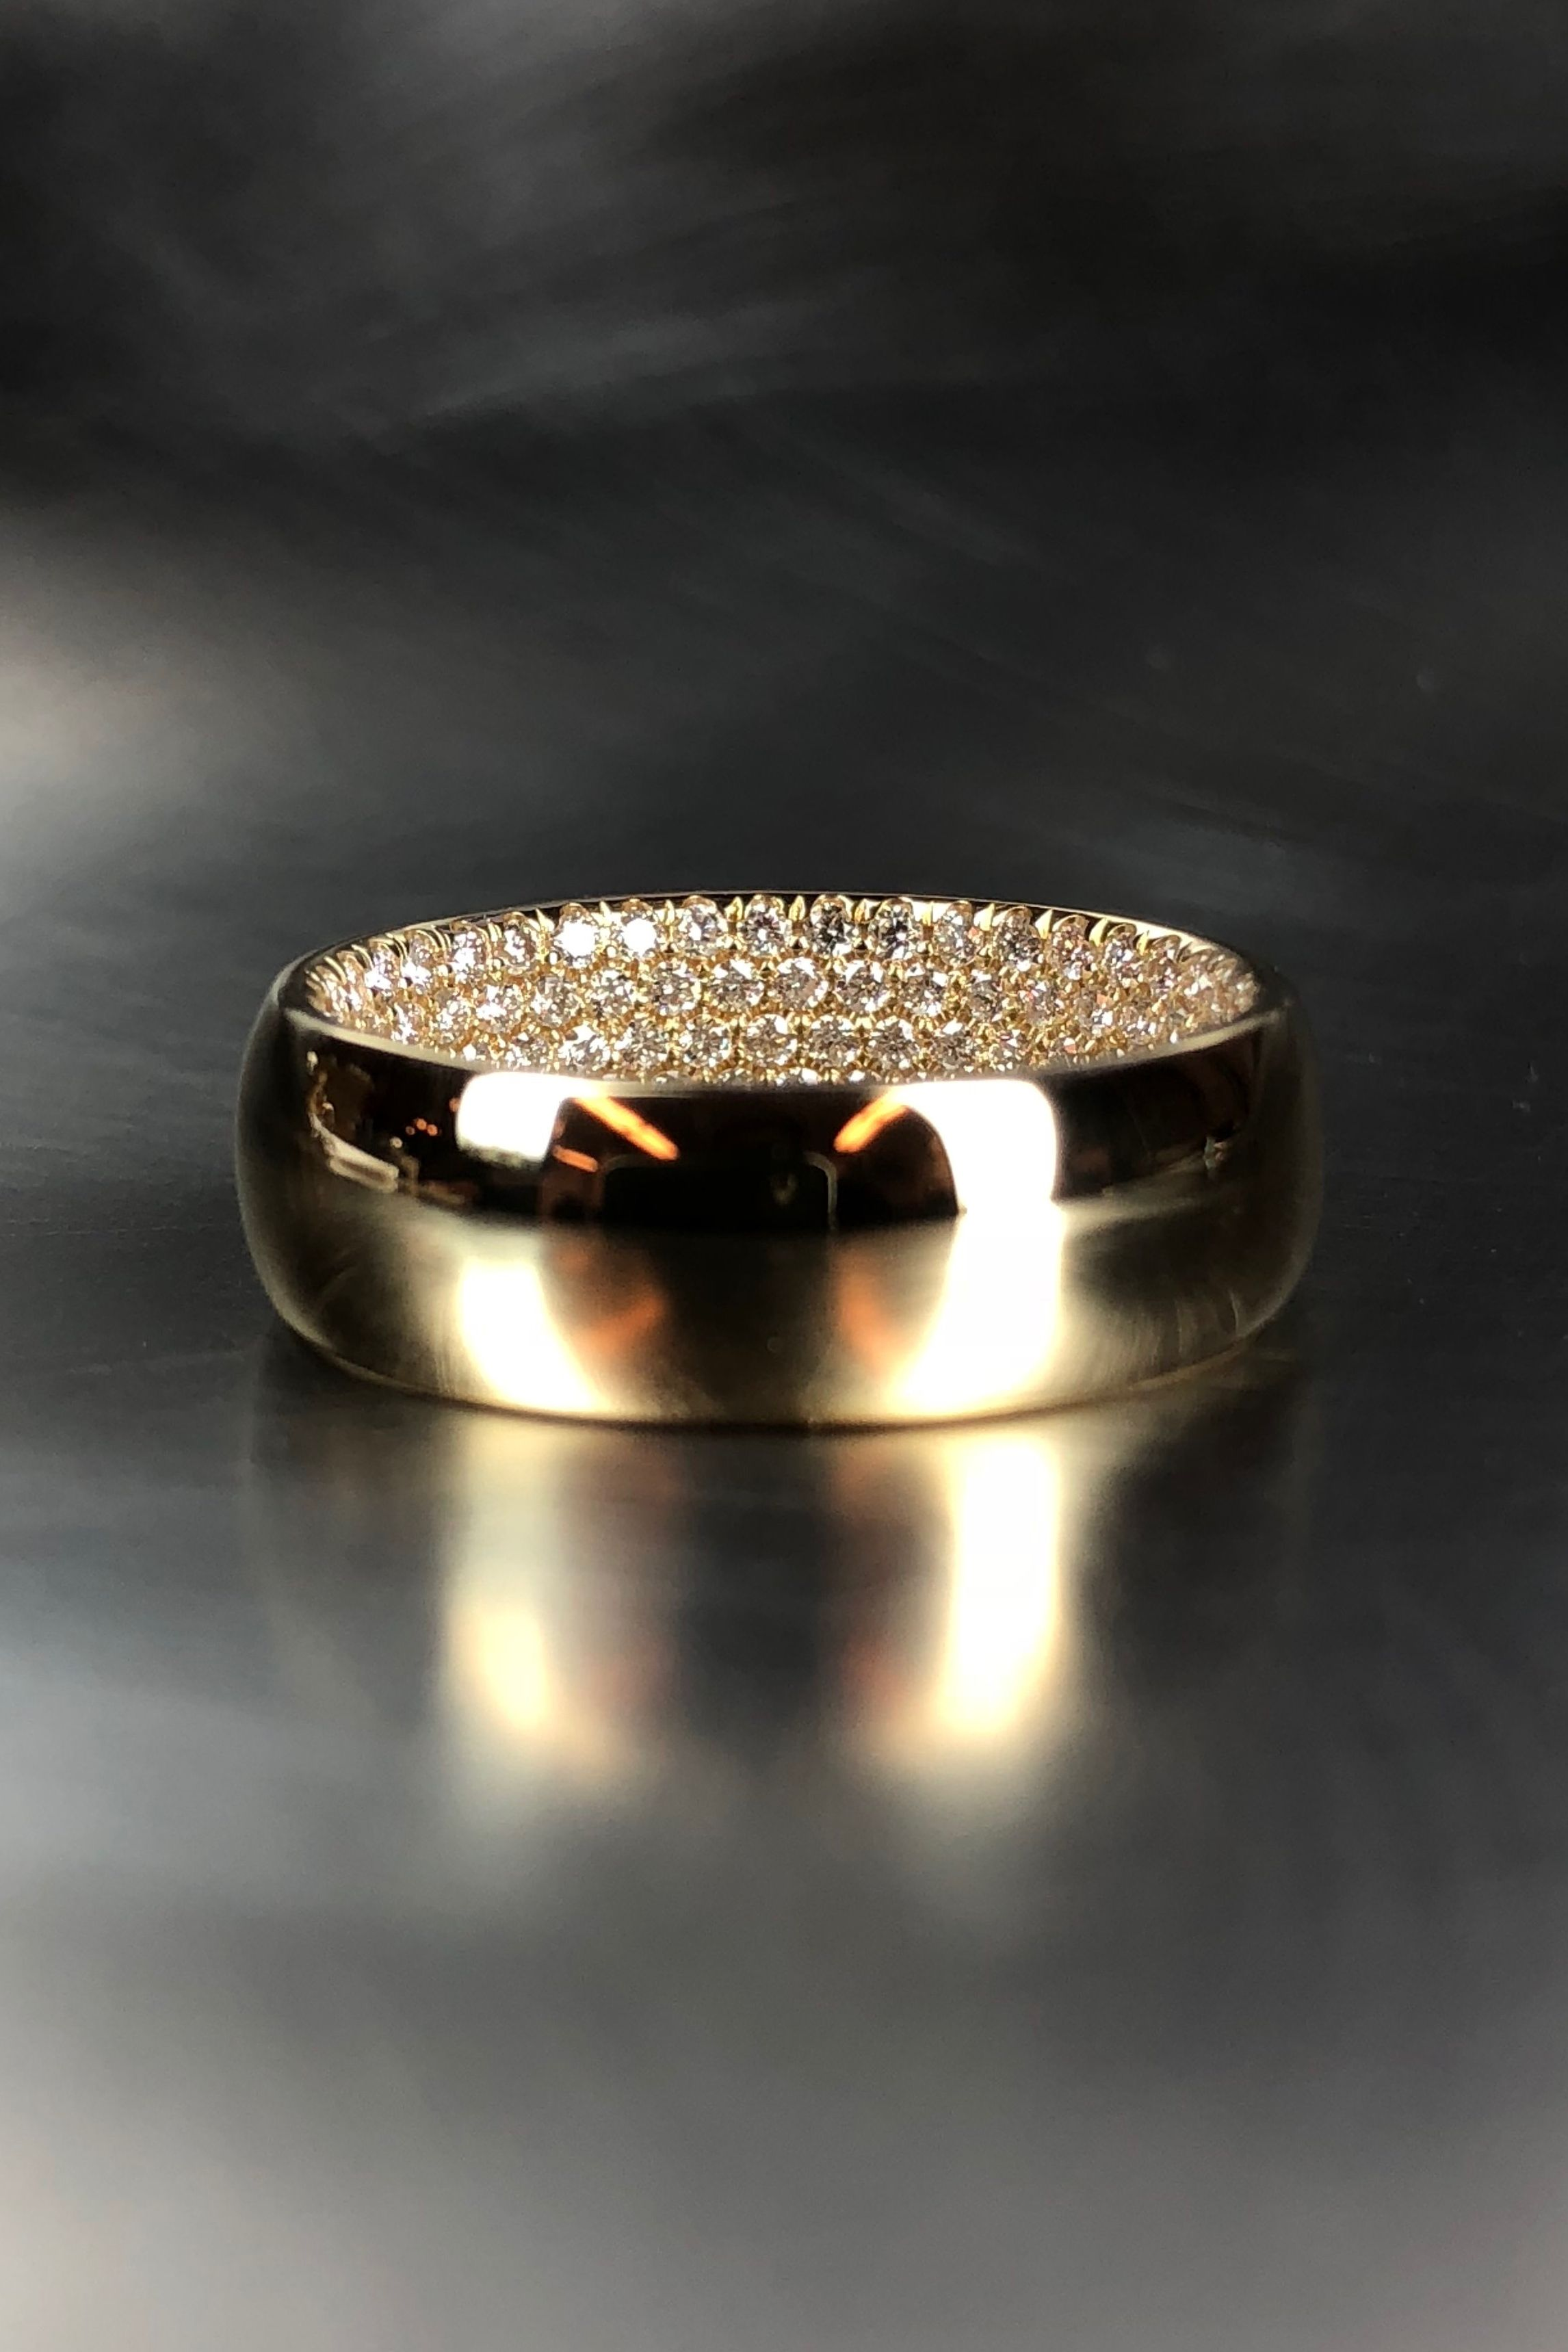 Unique Men S Gold Wedding Band With Hidden Diamonds Exclusively